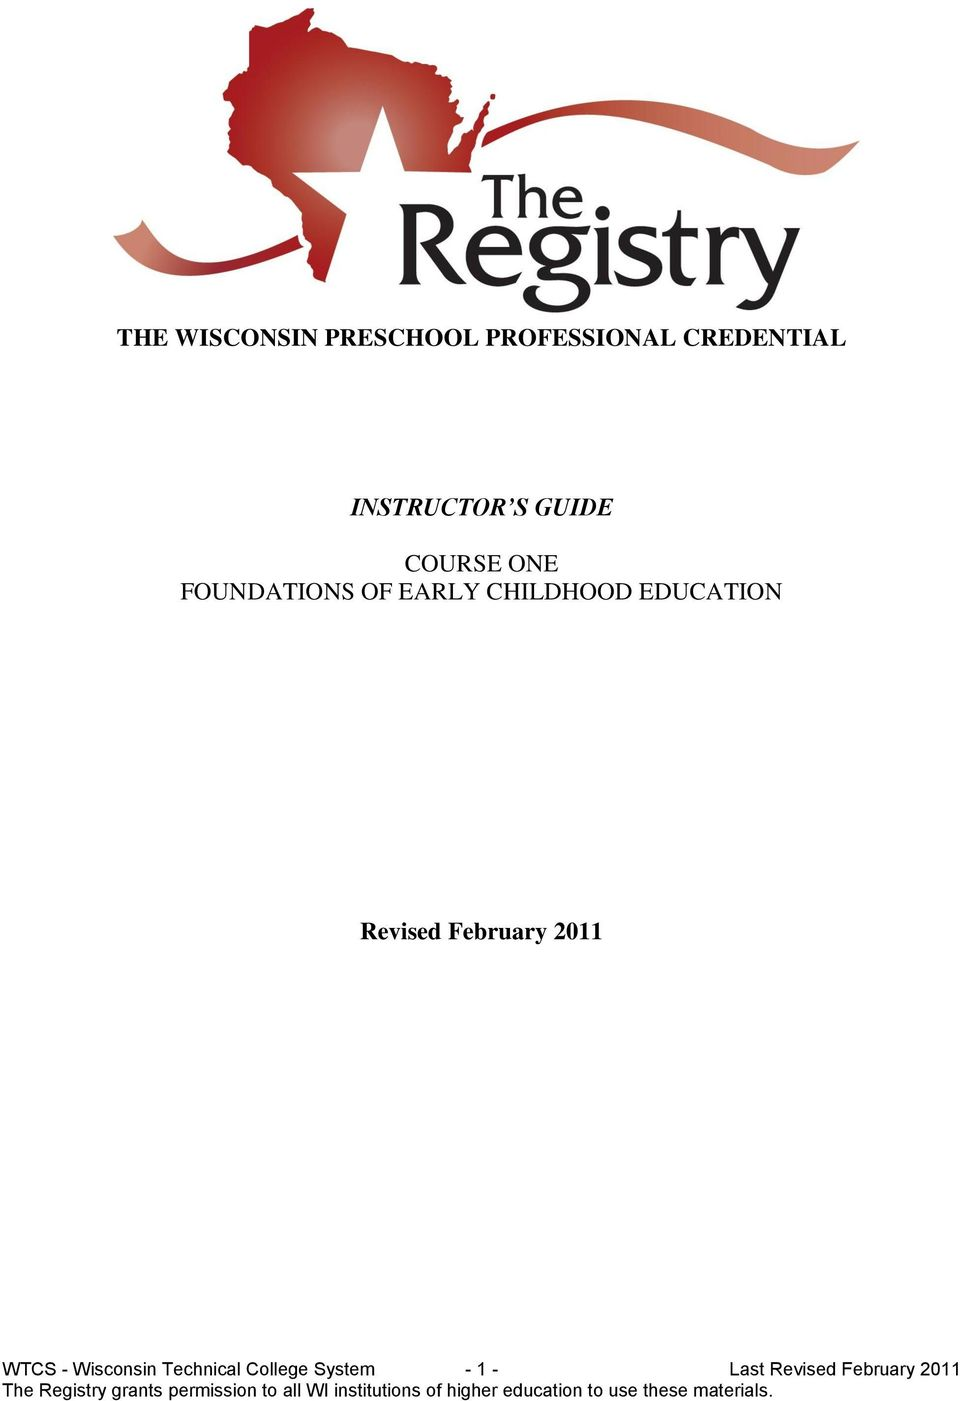 Wiscnsin Technical Cllege System - 1 - Last Revised February 2011 The